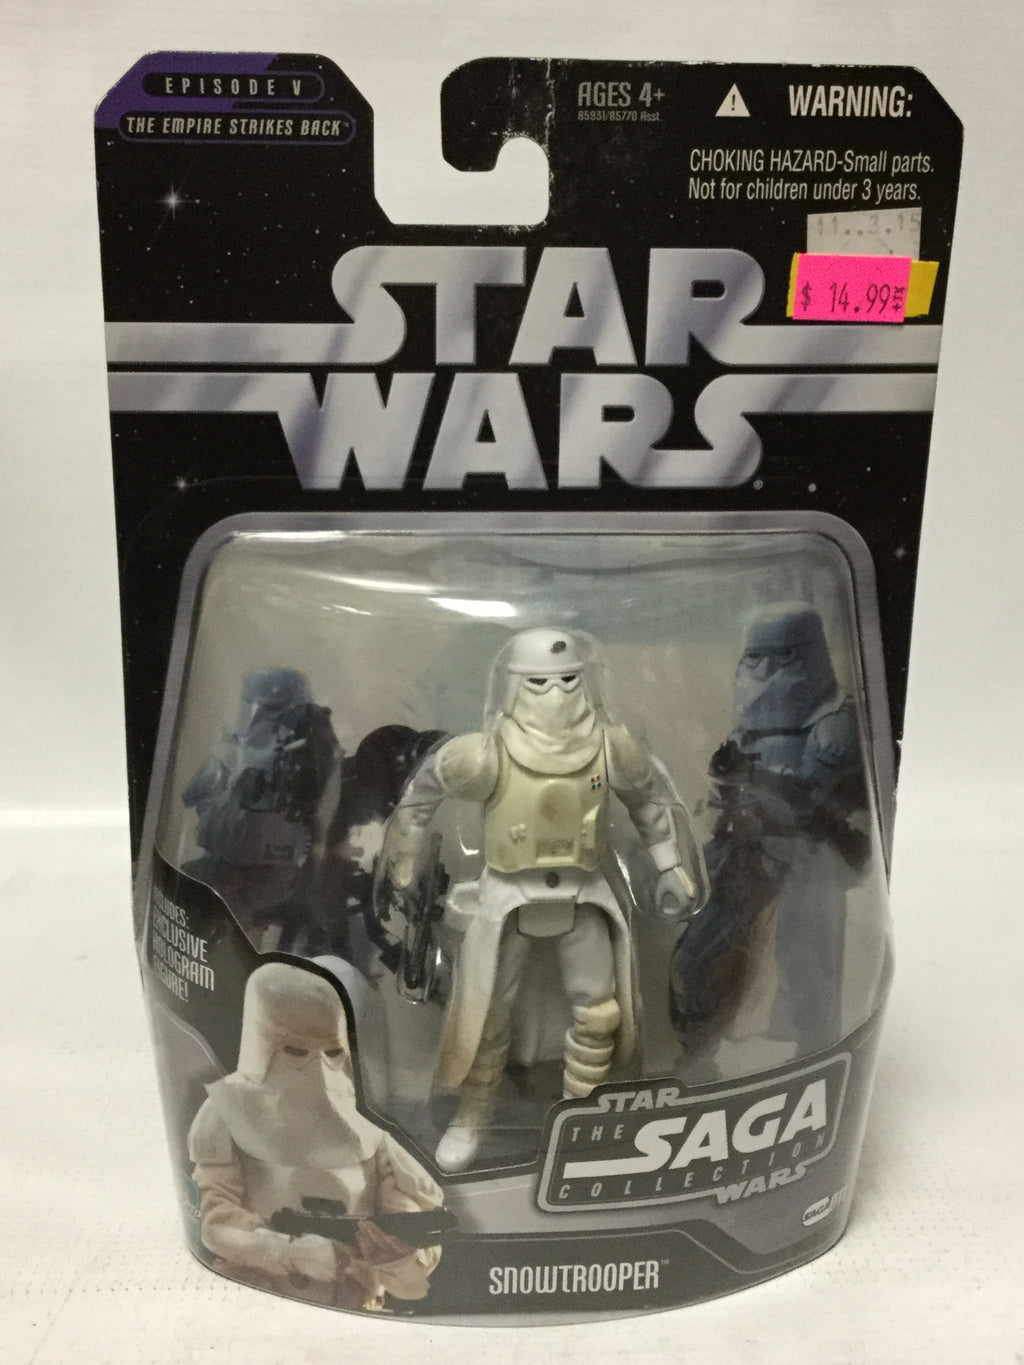 Hasbro Star Wars The Saga Collection Snowtrooper